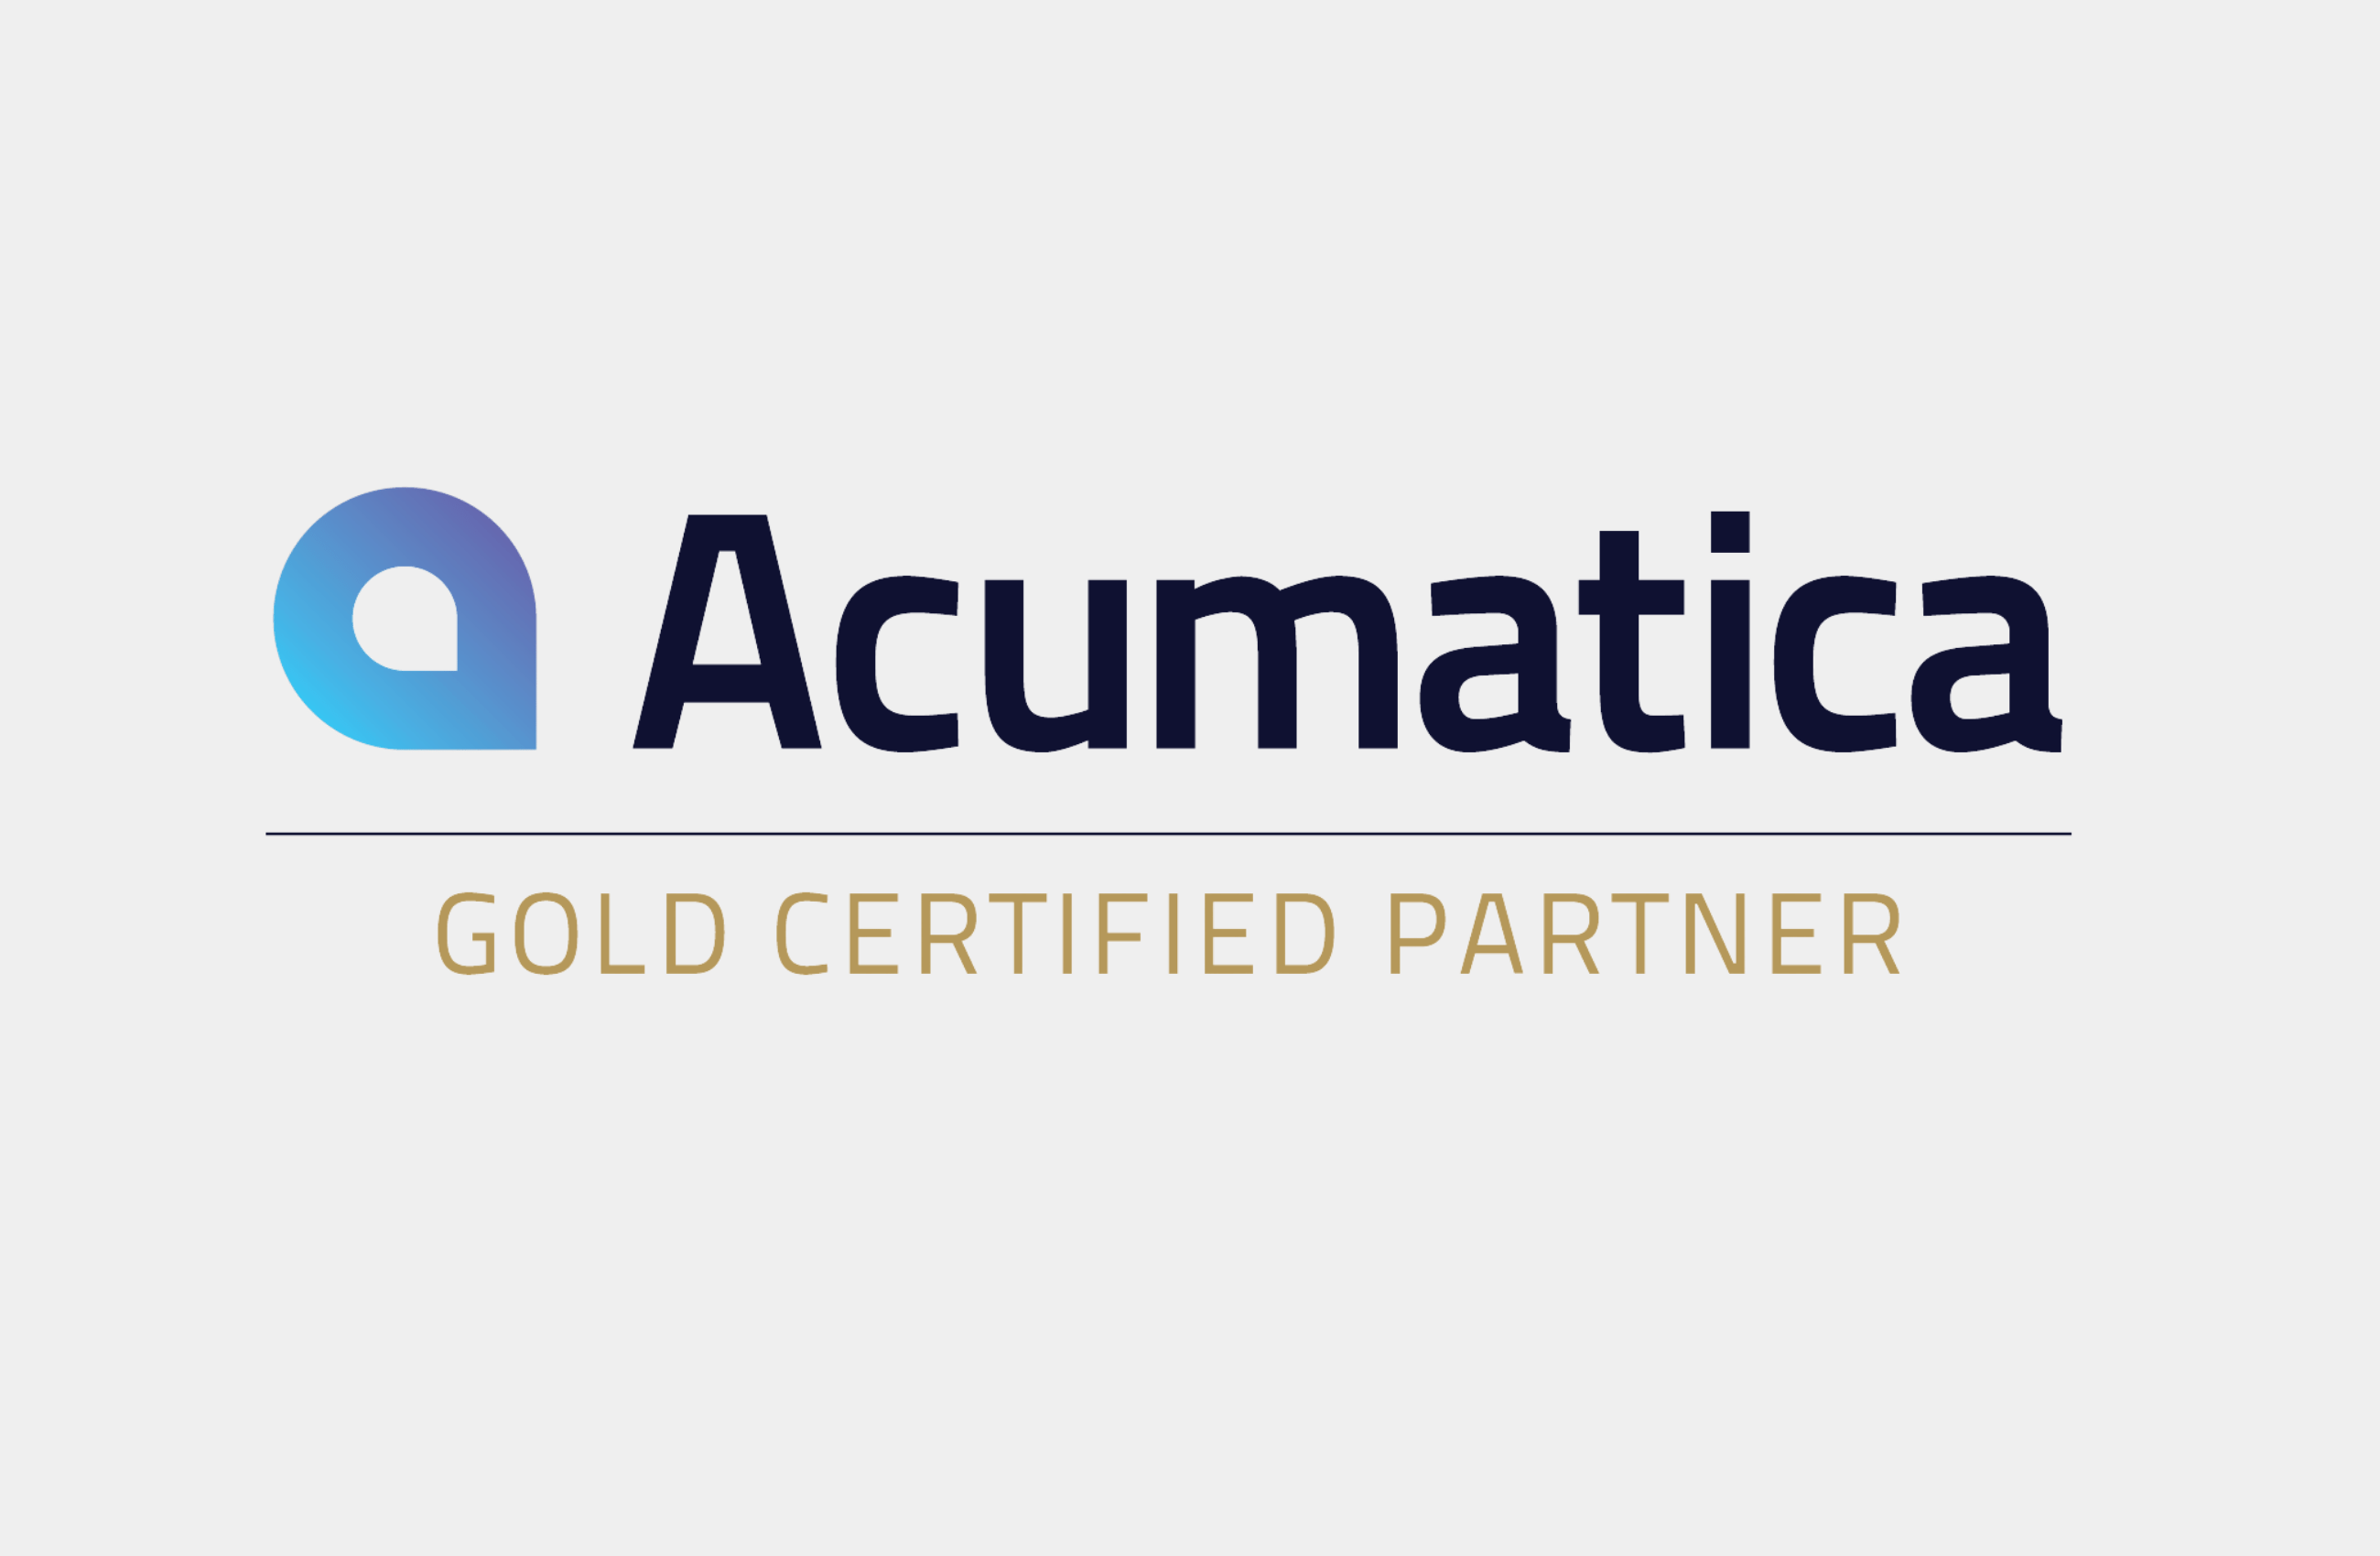 MaxQ Awarded the Acumatica Gold Partner Certificate